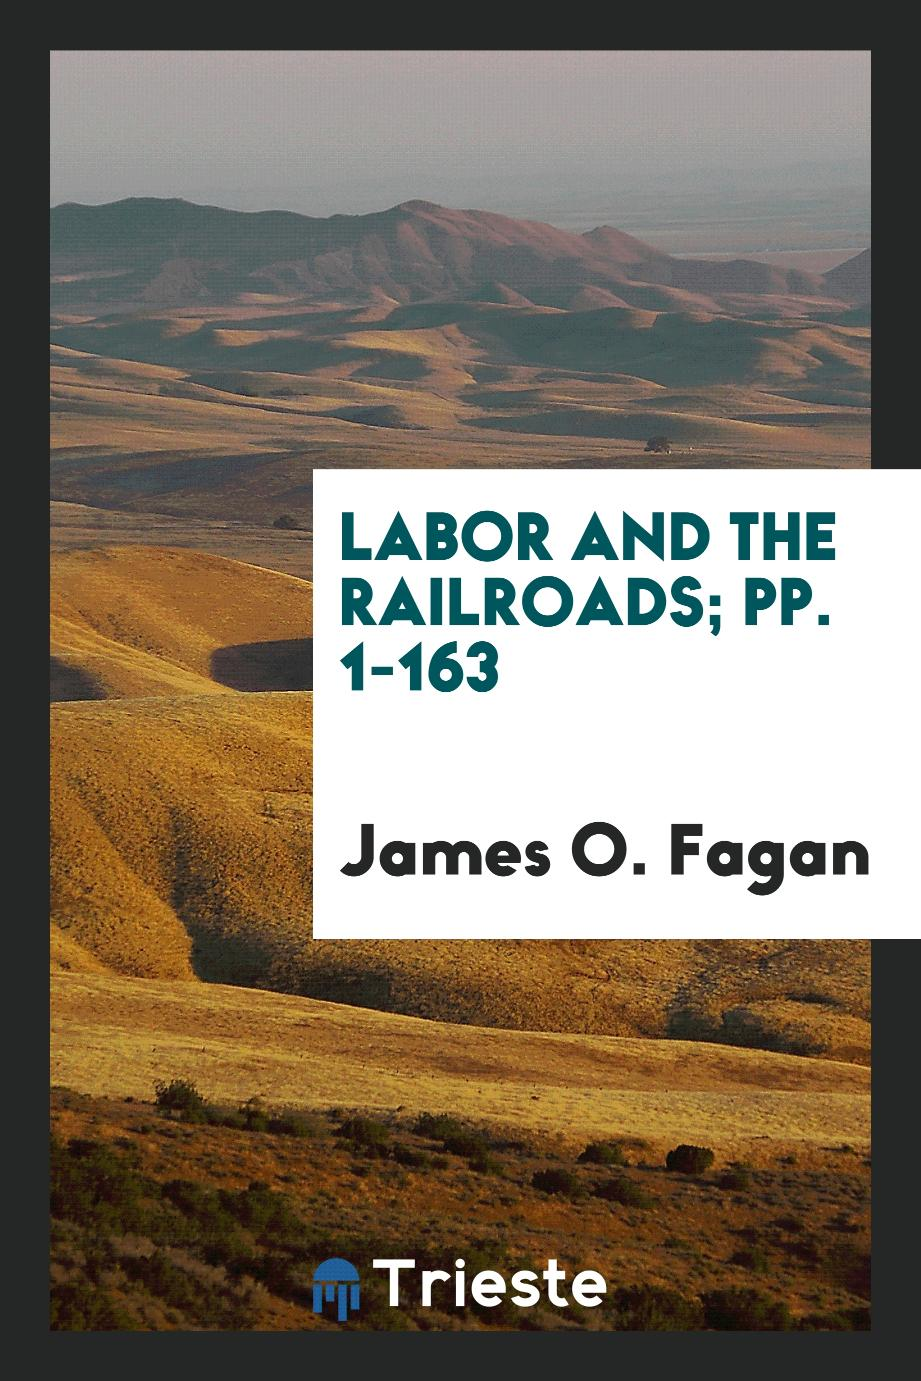 Labor and the Railroads; pp. 1-163